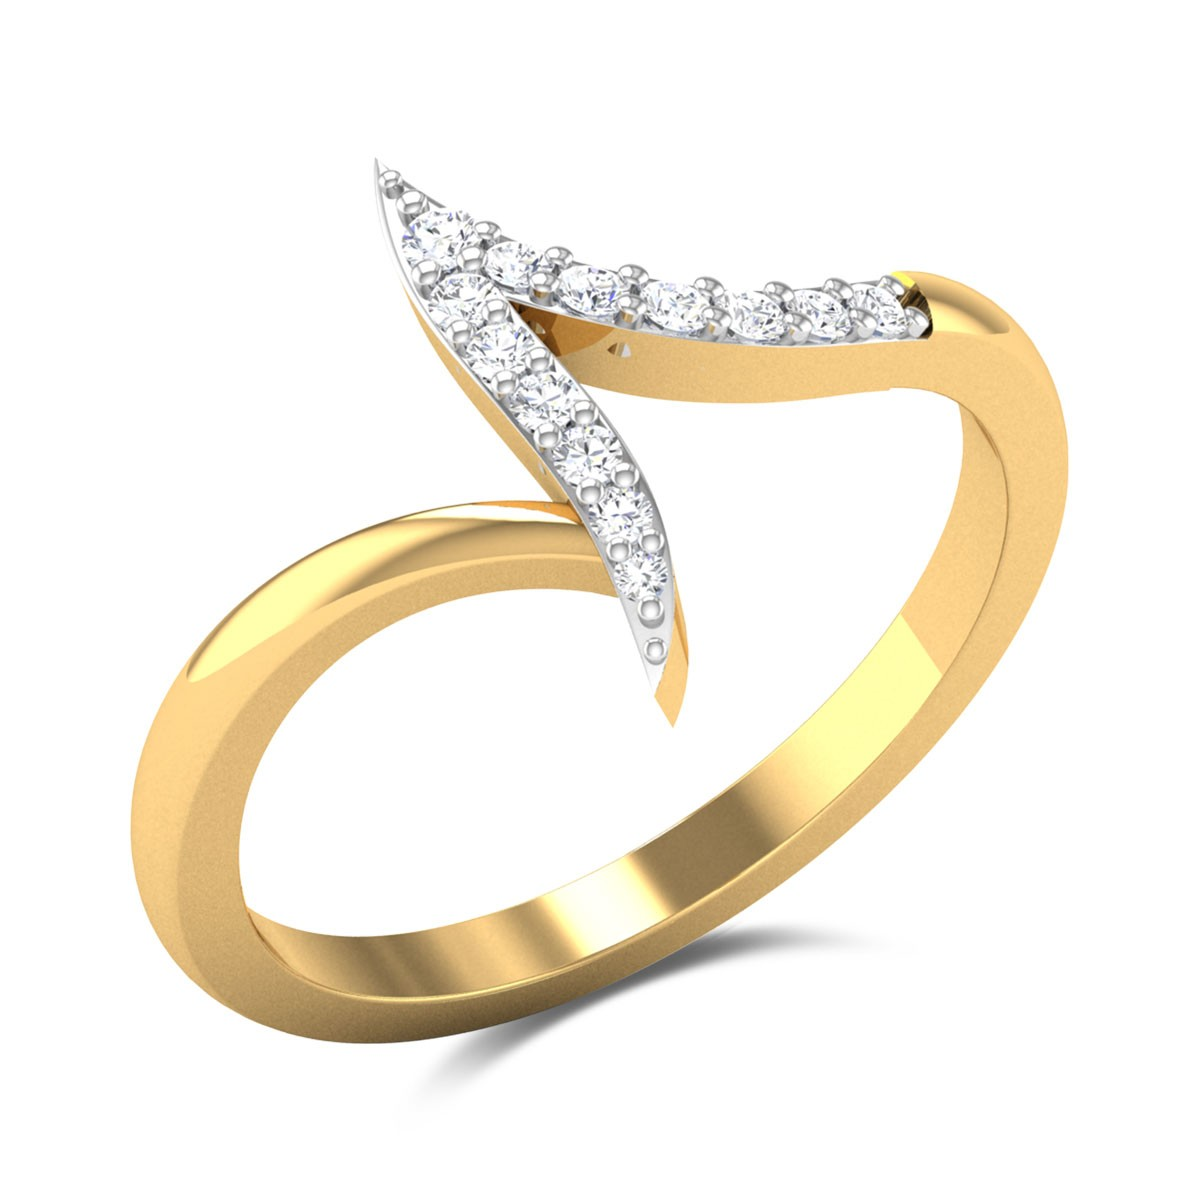 Brita Diamond Ring